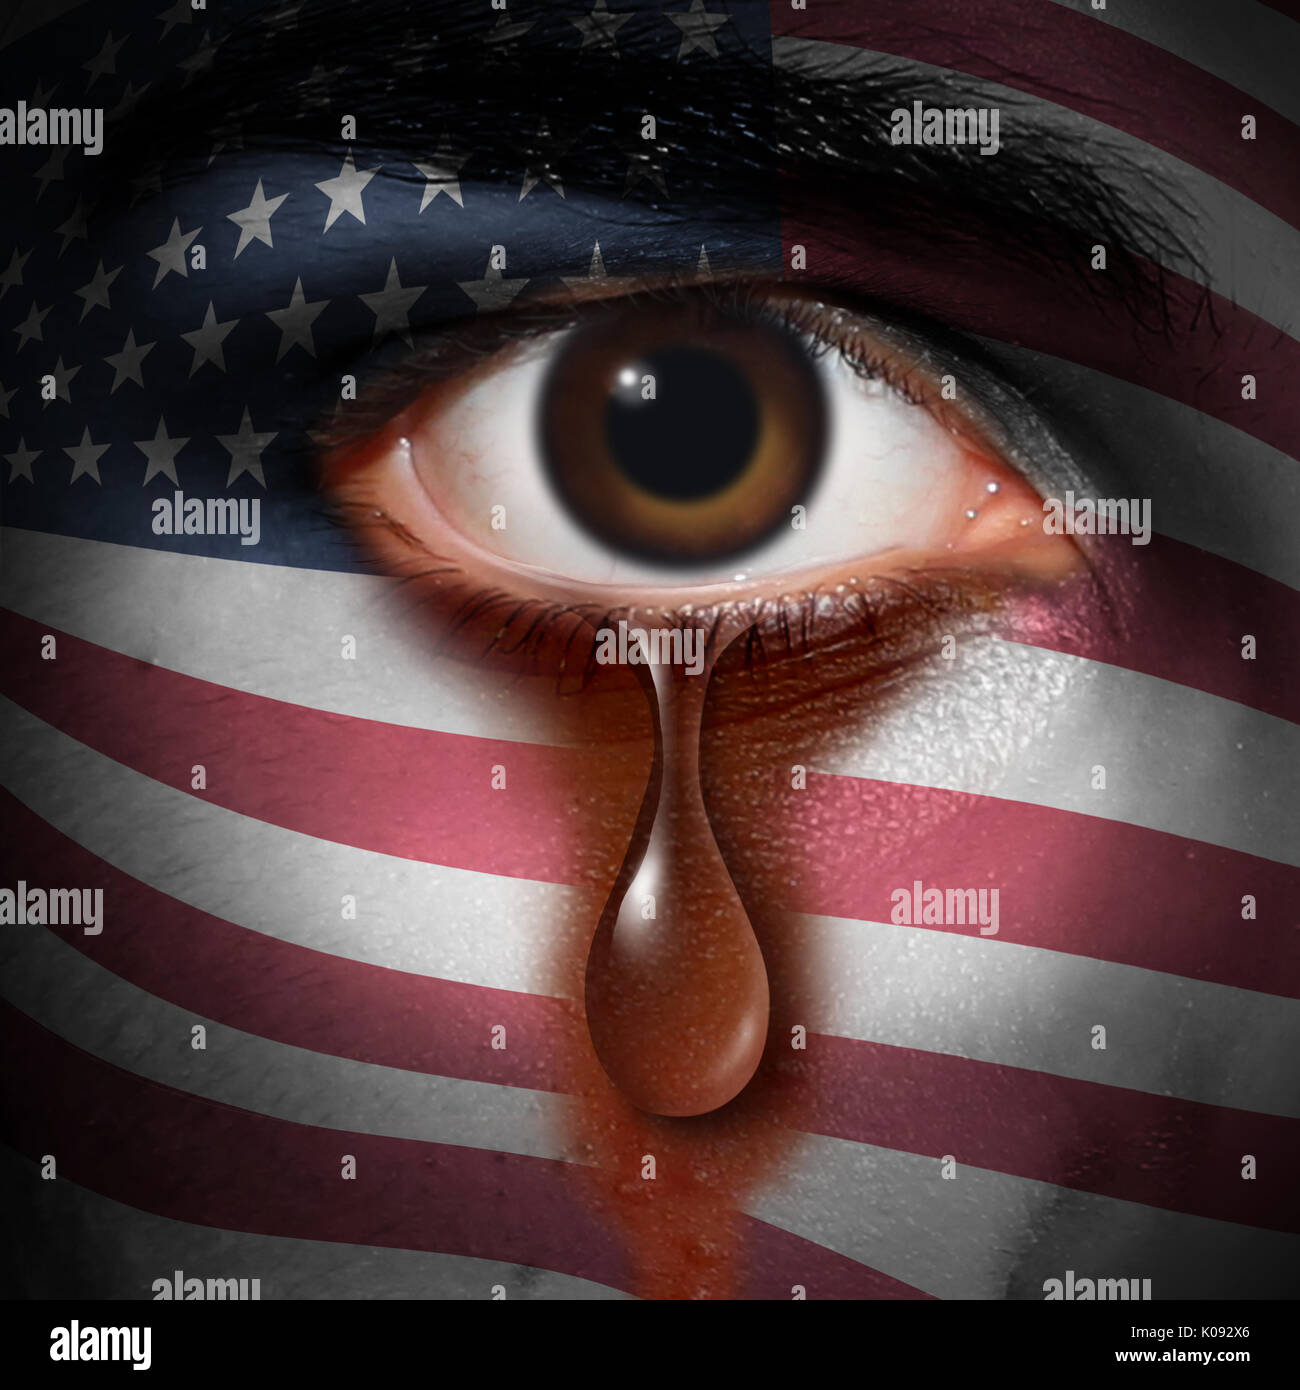 Racism in America and bigotry in the USA concept as the tear of an American minority washing away a flag of the United States painted on a face. - Stock Image